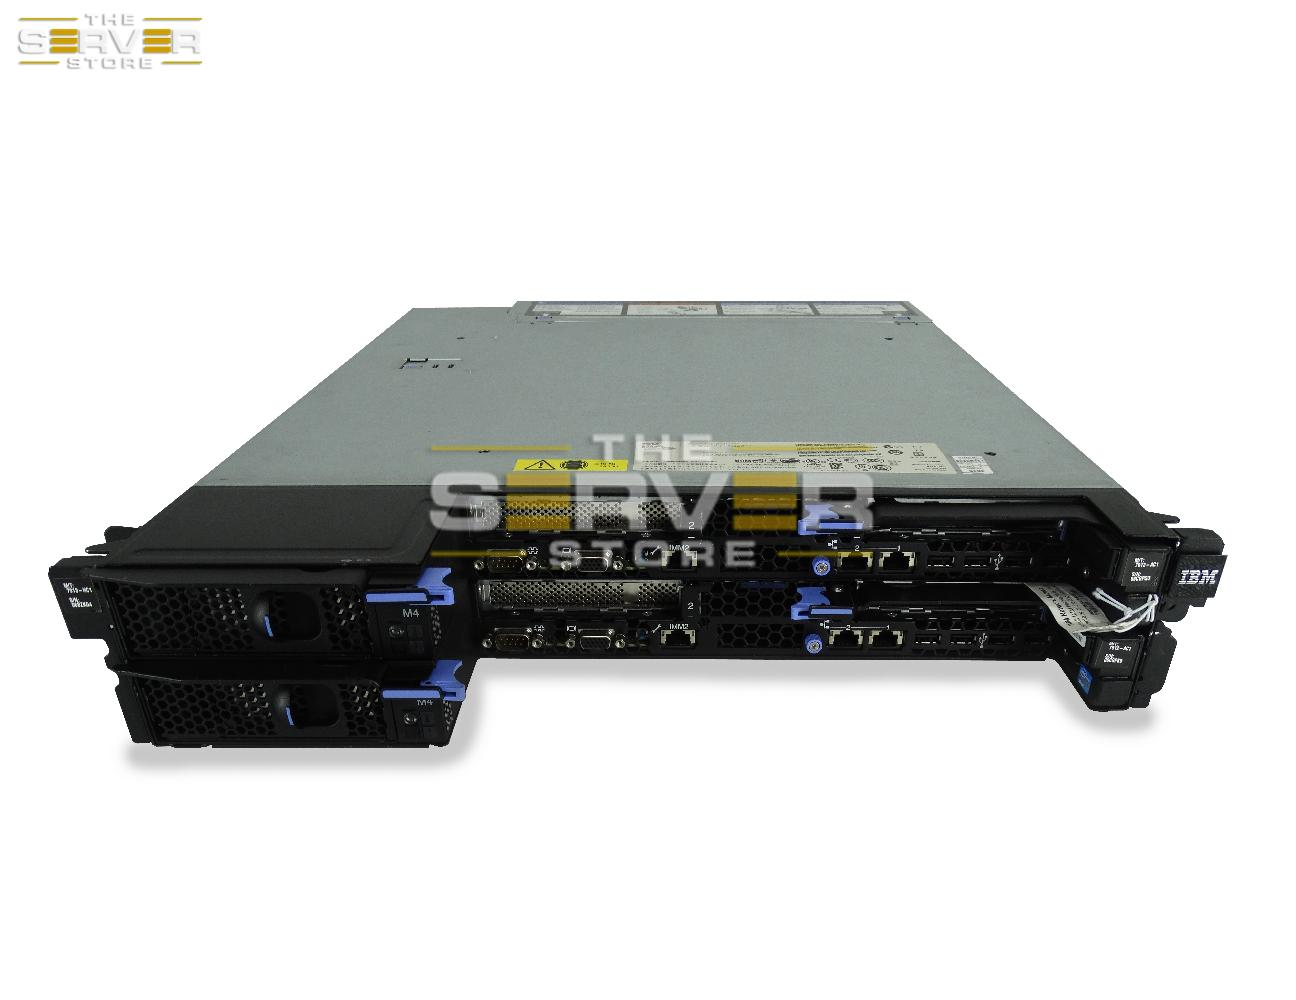 IBM DX360 M4 2 Node Server *Website upgrade in progress. Please contact us with any questions you may have.*